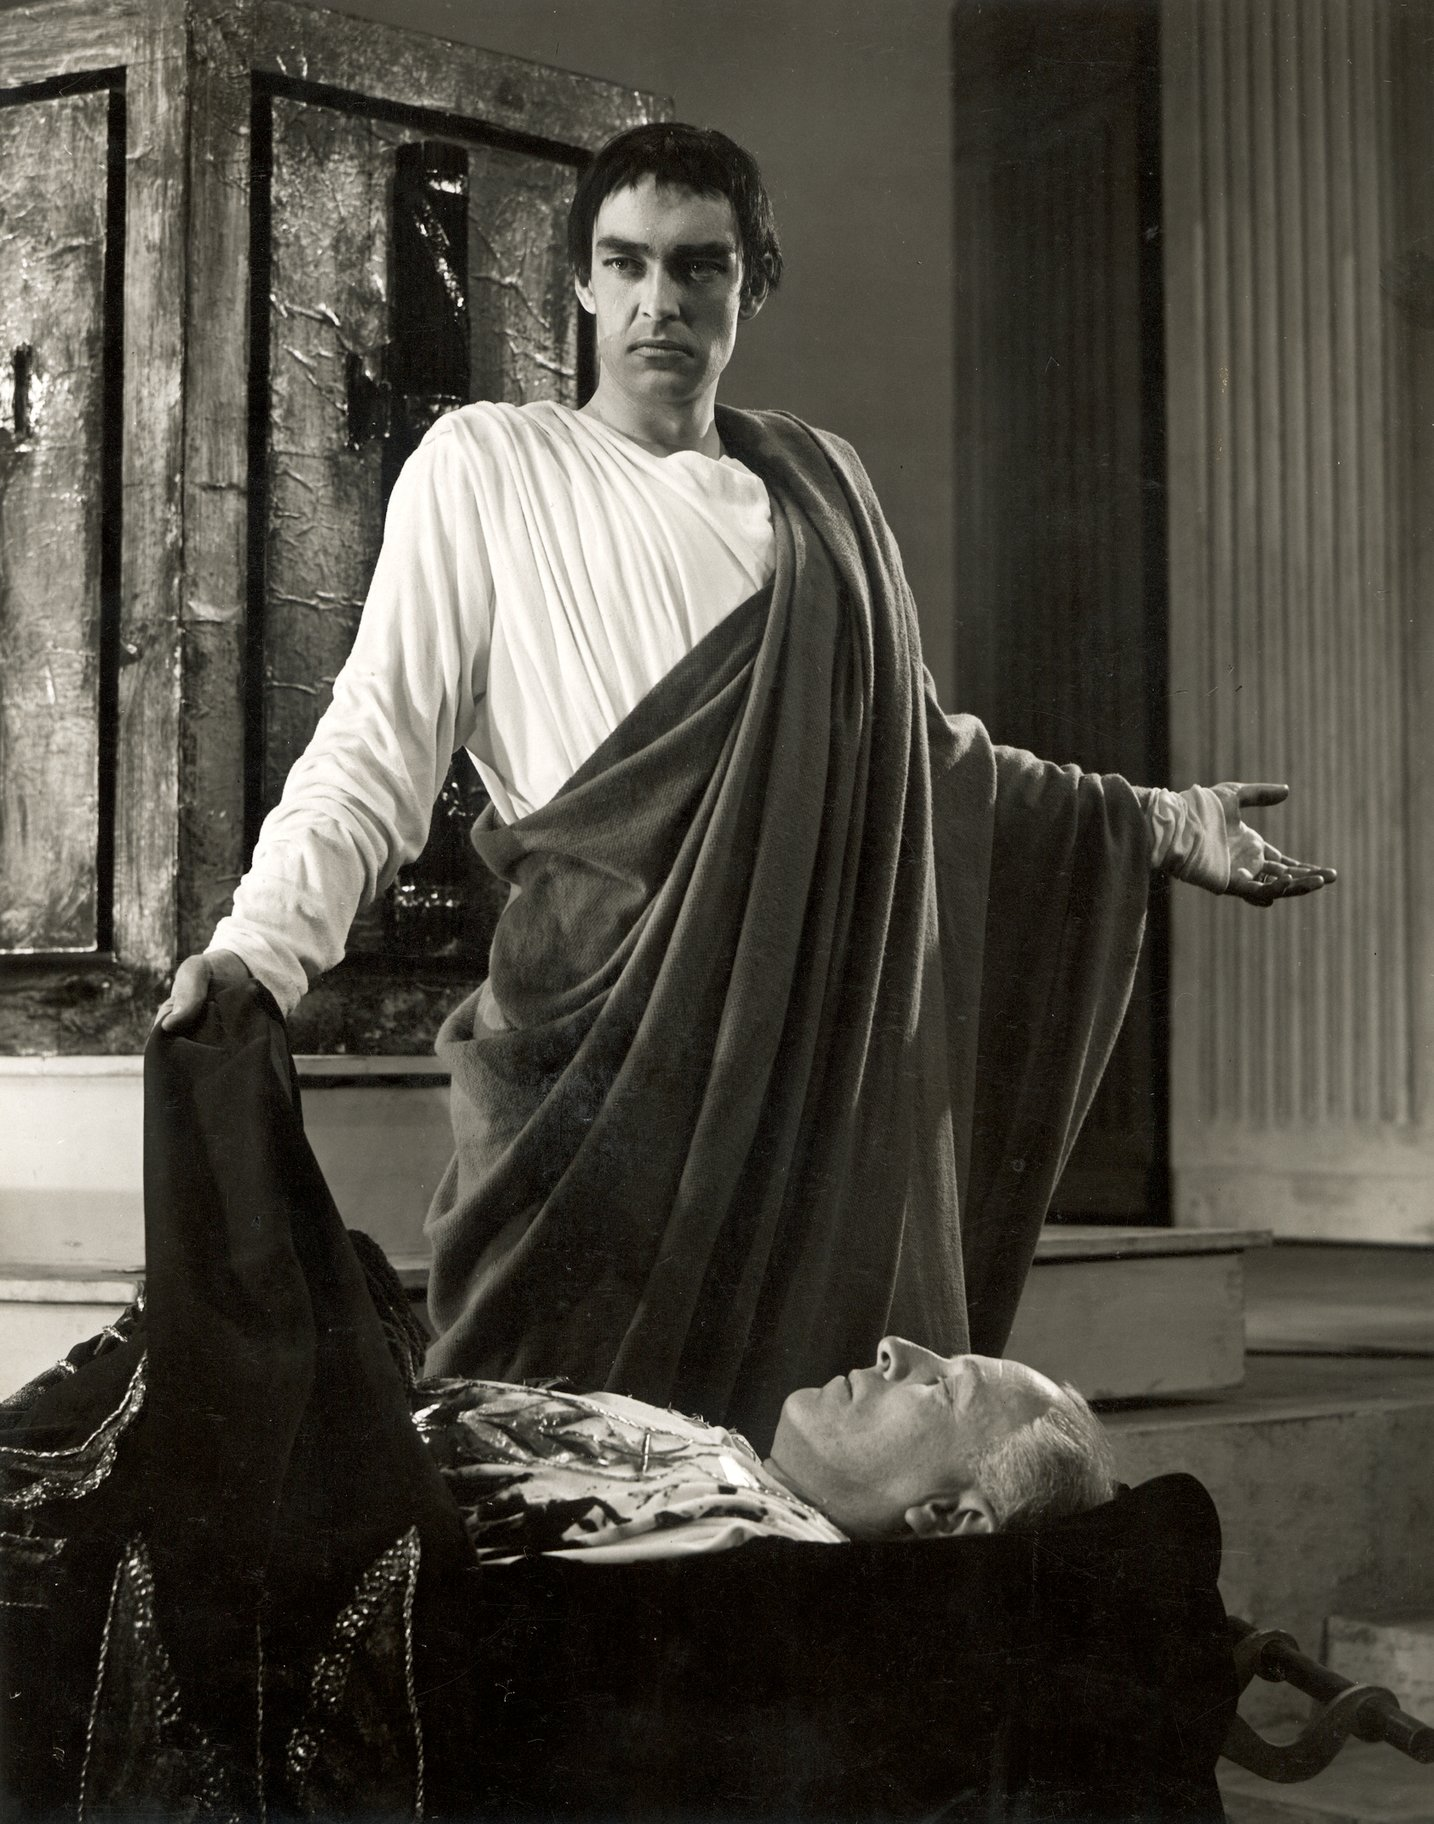 Mark Antony standing over the body of Julius Caesar